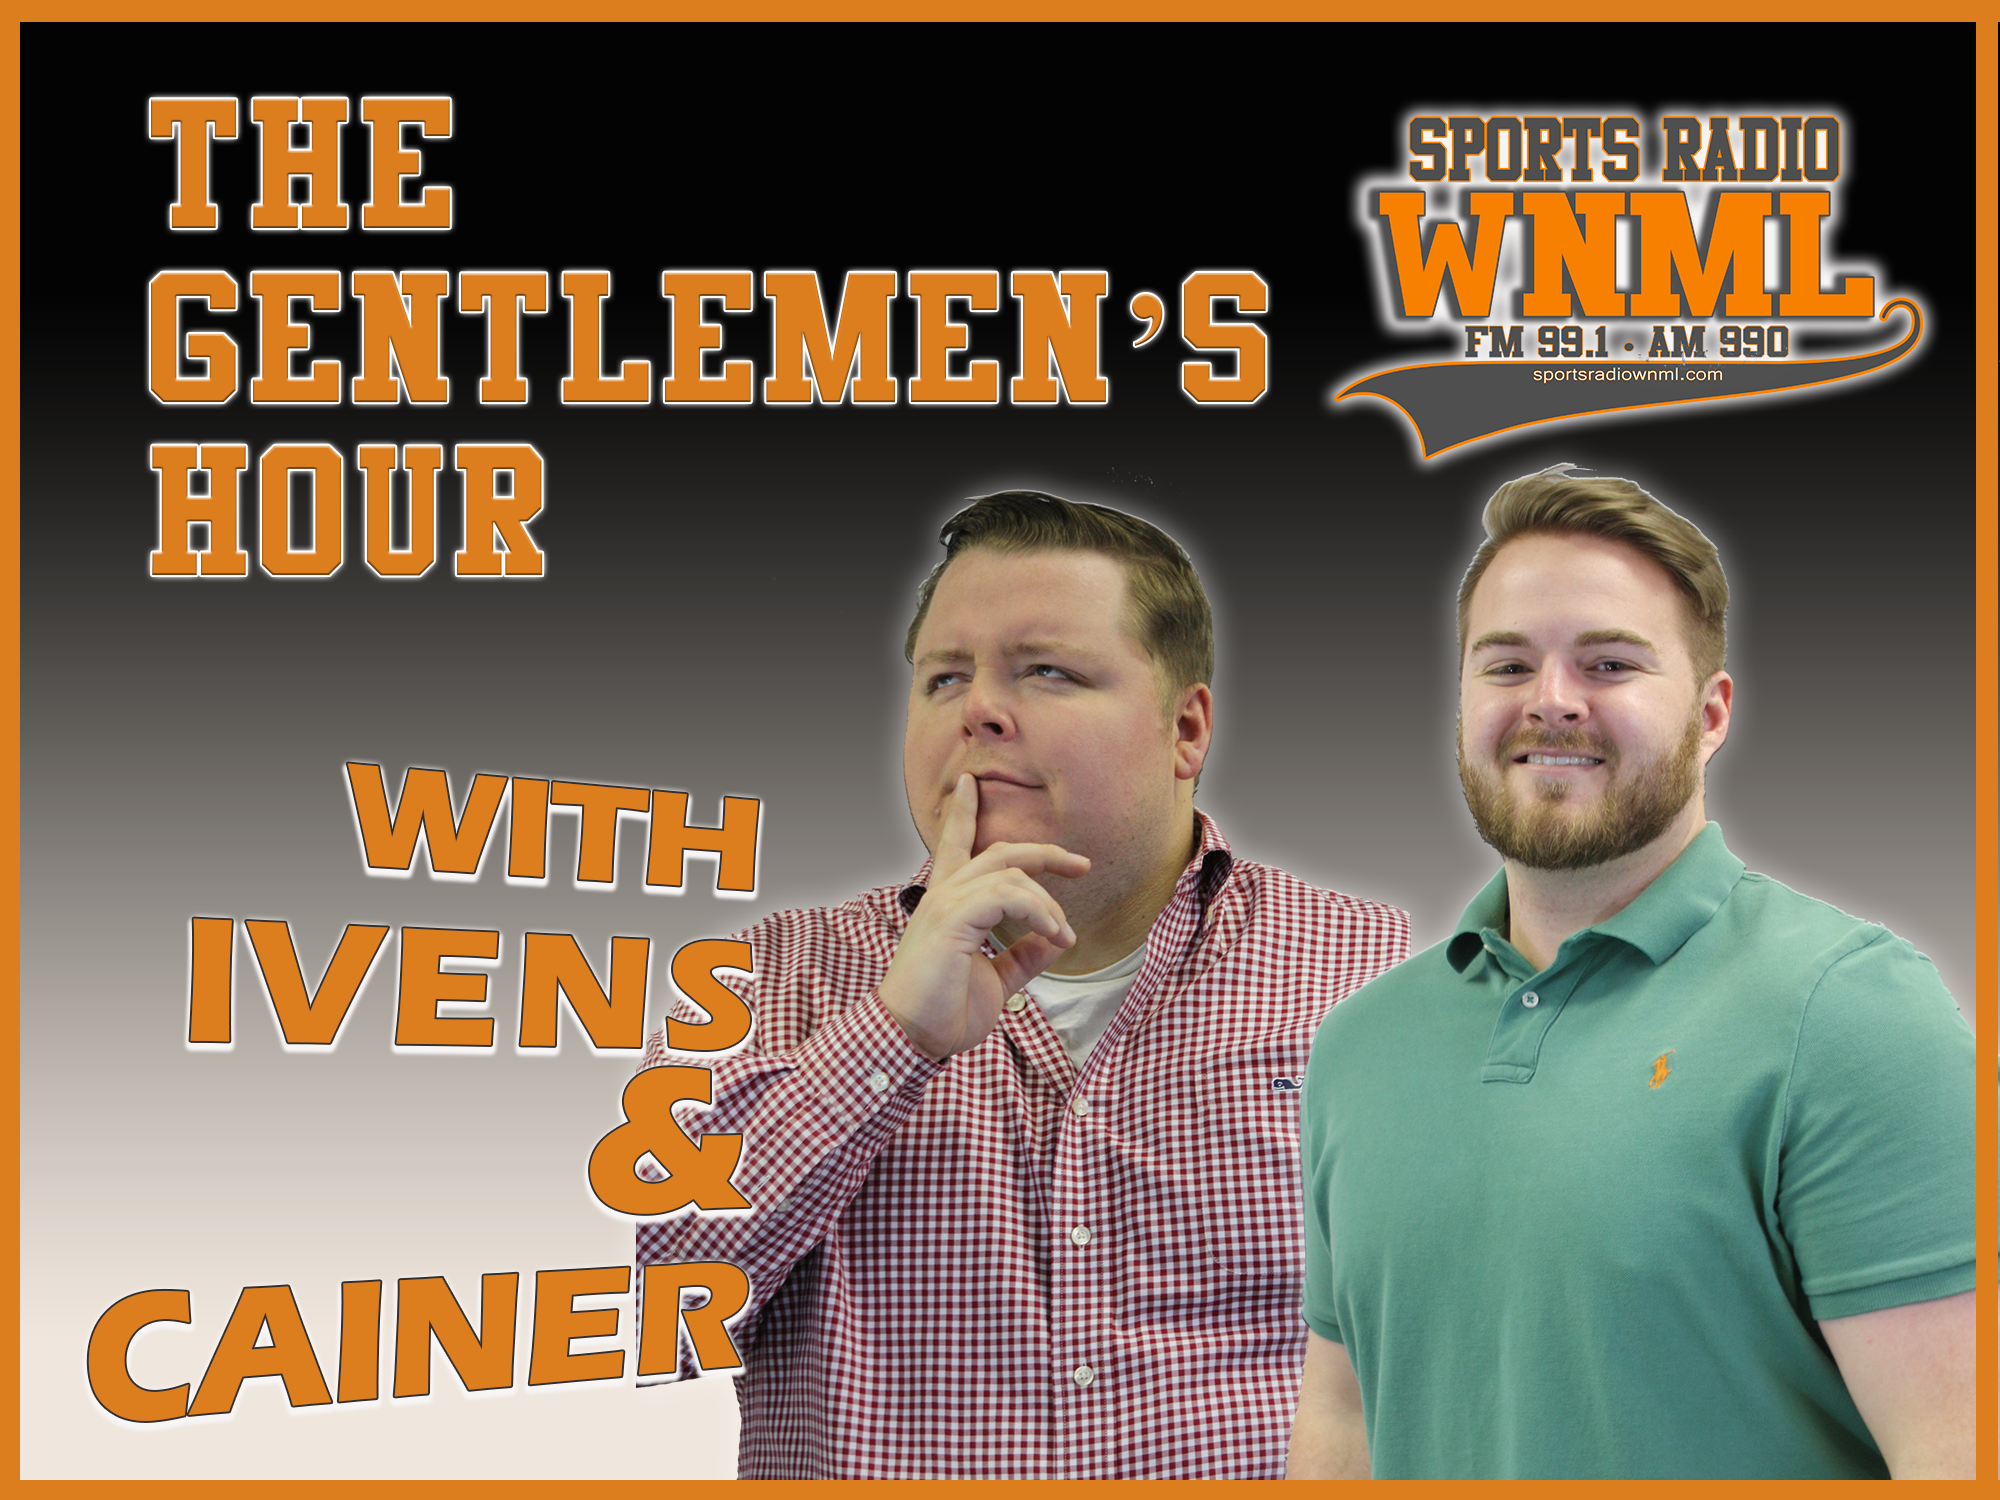 The Gentlemen's Hour Podcast: Episode 30 (5.15.19)